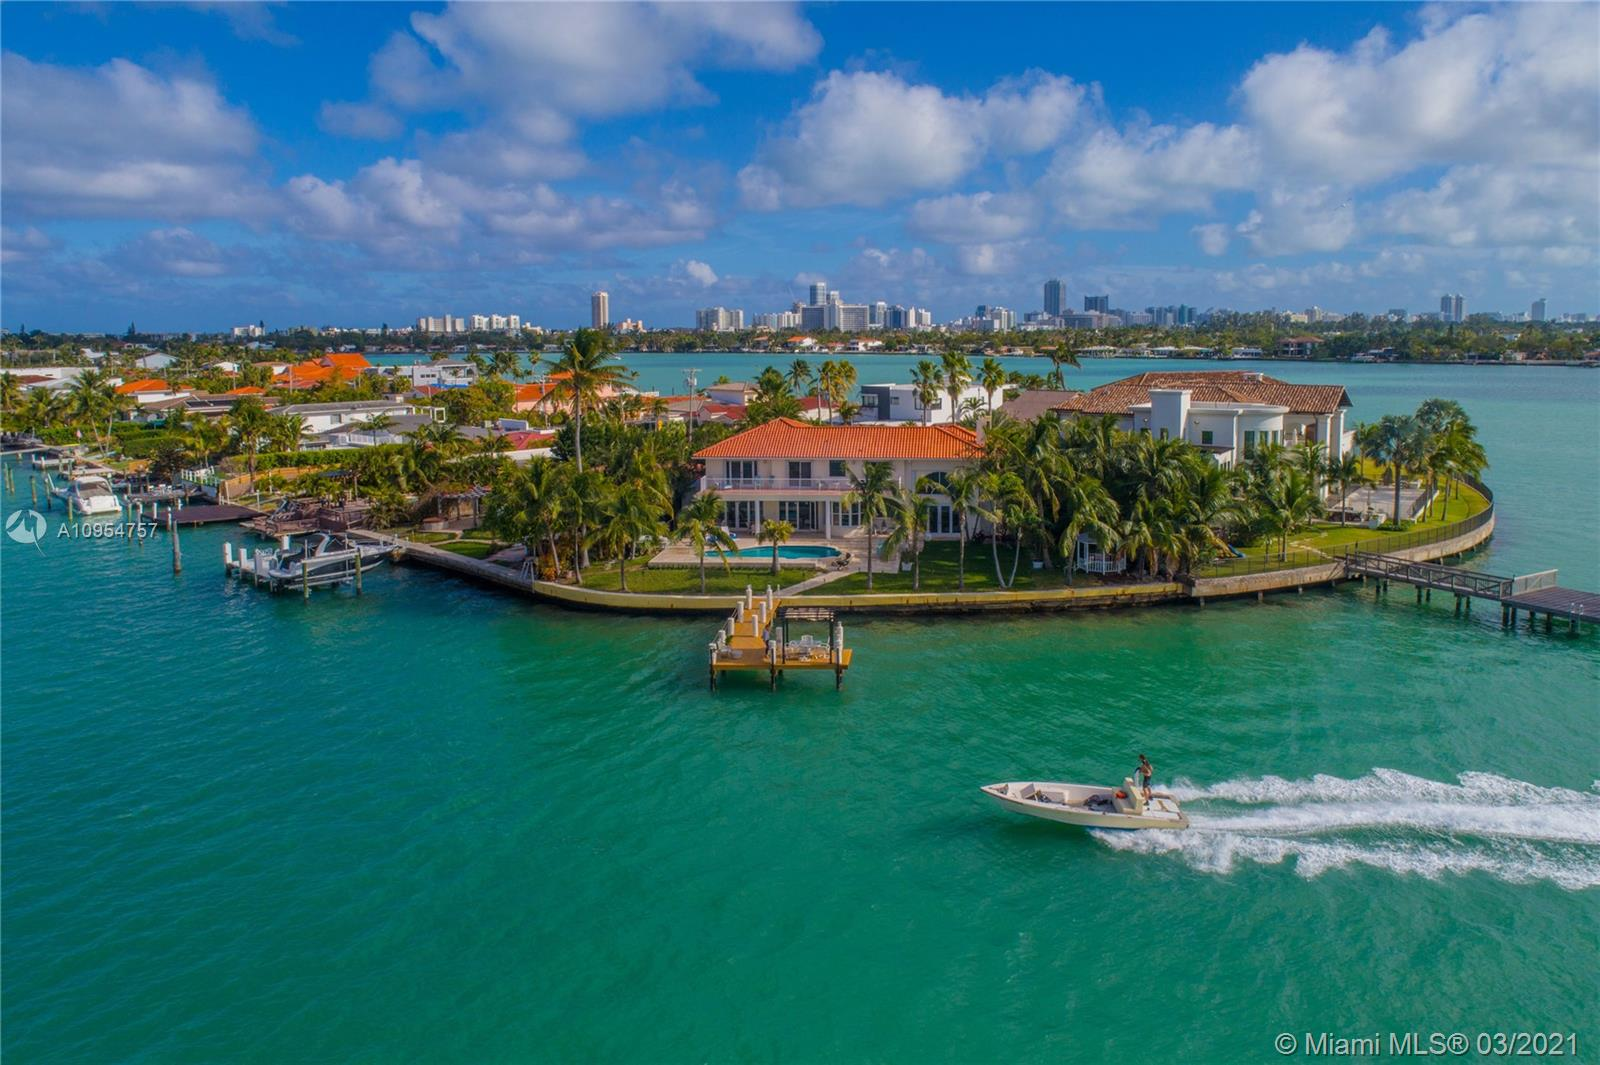 Exquisite home on peak of a gated street on a peninsula in Miami Beach. This 5/3.5 home offers safety, privacy and breathtaking wide bay views of Biscayne Bay and world renown Indian Creek's 50 million dollar homes. Deep water access with no bridges to bay and a dock with room for a large boat and 138 feet of waterfront. Italian Snaidero Kitchen with Miele appliances and an eat in kitchen with beautiful bay views. Marble floors are throughout. Formal living and dining rooms for entertaining. Master bath has jacuzzi tub, shower w/ bay views, and separate room for toilet and bidet. Beautiful sunrises and sunsets can bee seen from the dock,as can dolphins and manatees playing. 1.5 mile walk to the beach; Close to Bal Harbour shops, places of worship, beach. Sold subject to 1 yr rental $26k/mo